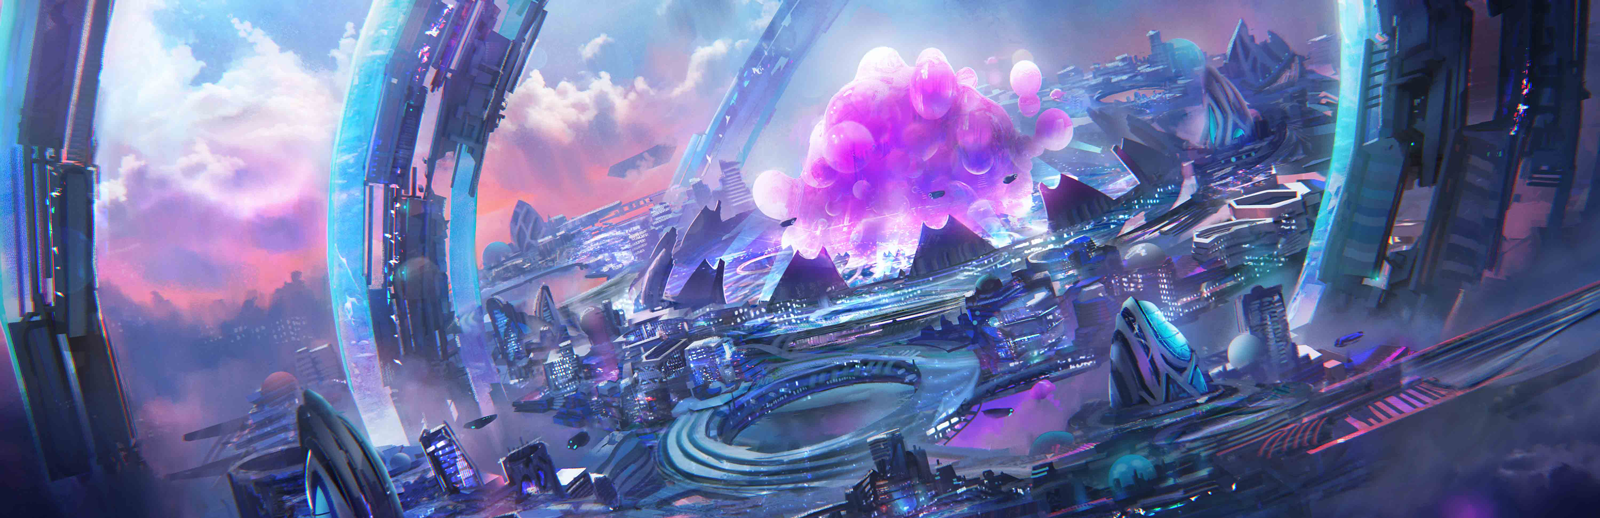 : A floating city of concentric rings of white, silver, and clear metal among a sea of colorful clouds. At the center of the ring is a massive pink organism that looks like a giant amoeba.